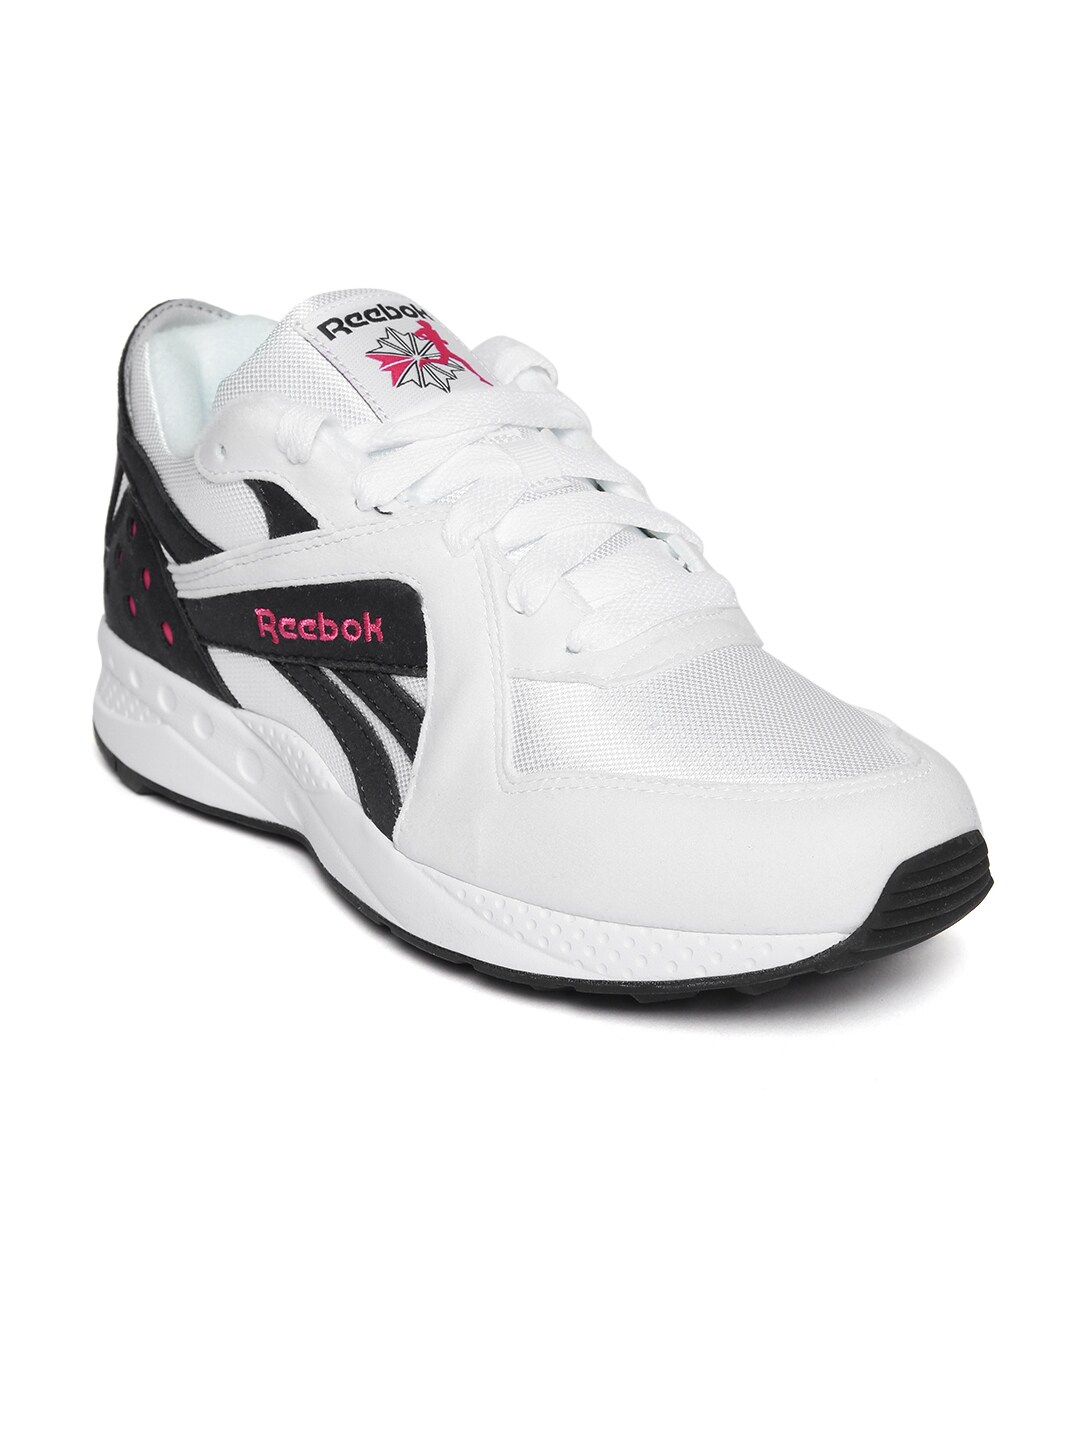 bb60ae05e74b Reebok Classic Shoes - Buy Reebok Classic Shoes online in India